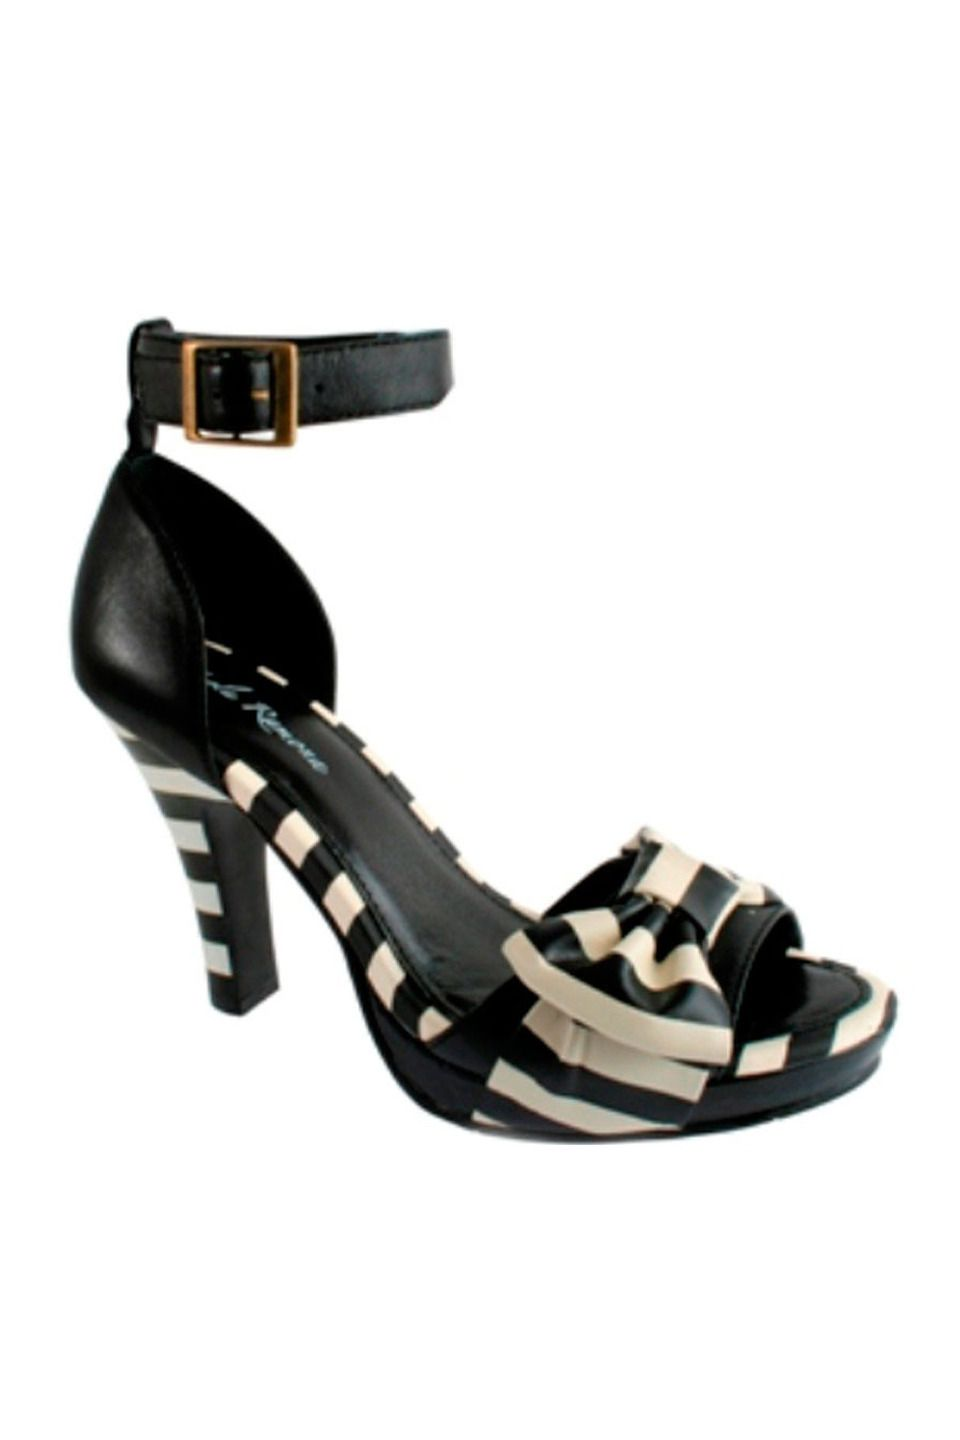 9b5a04096848 Lola Ramona Angie Sandal with Ankle Strap in Black and White